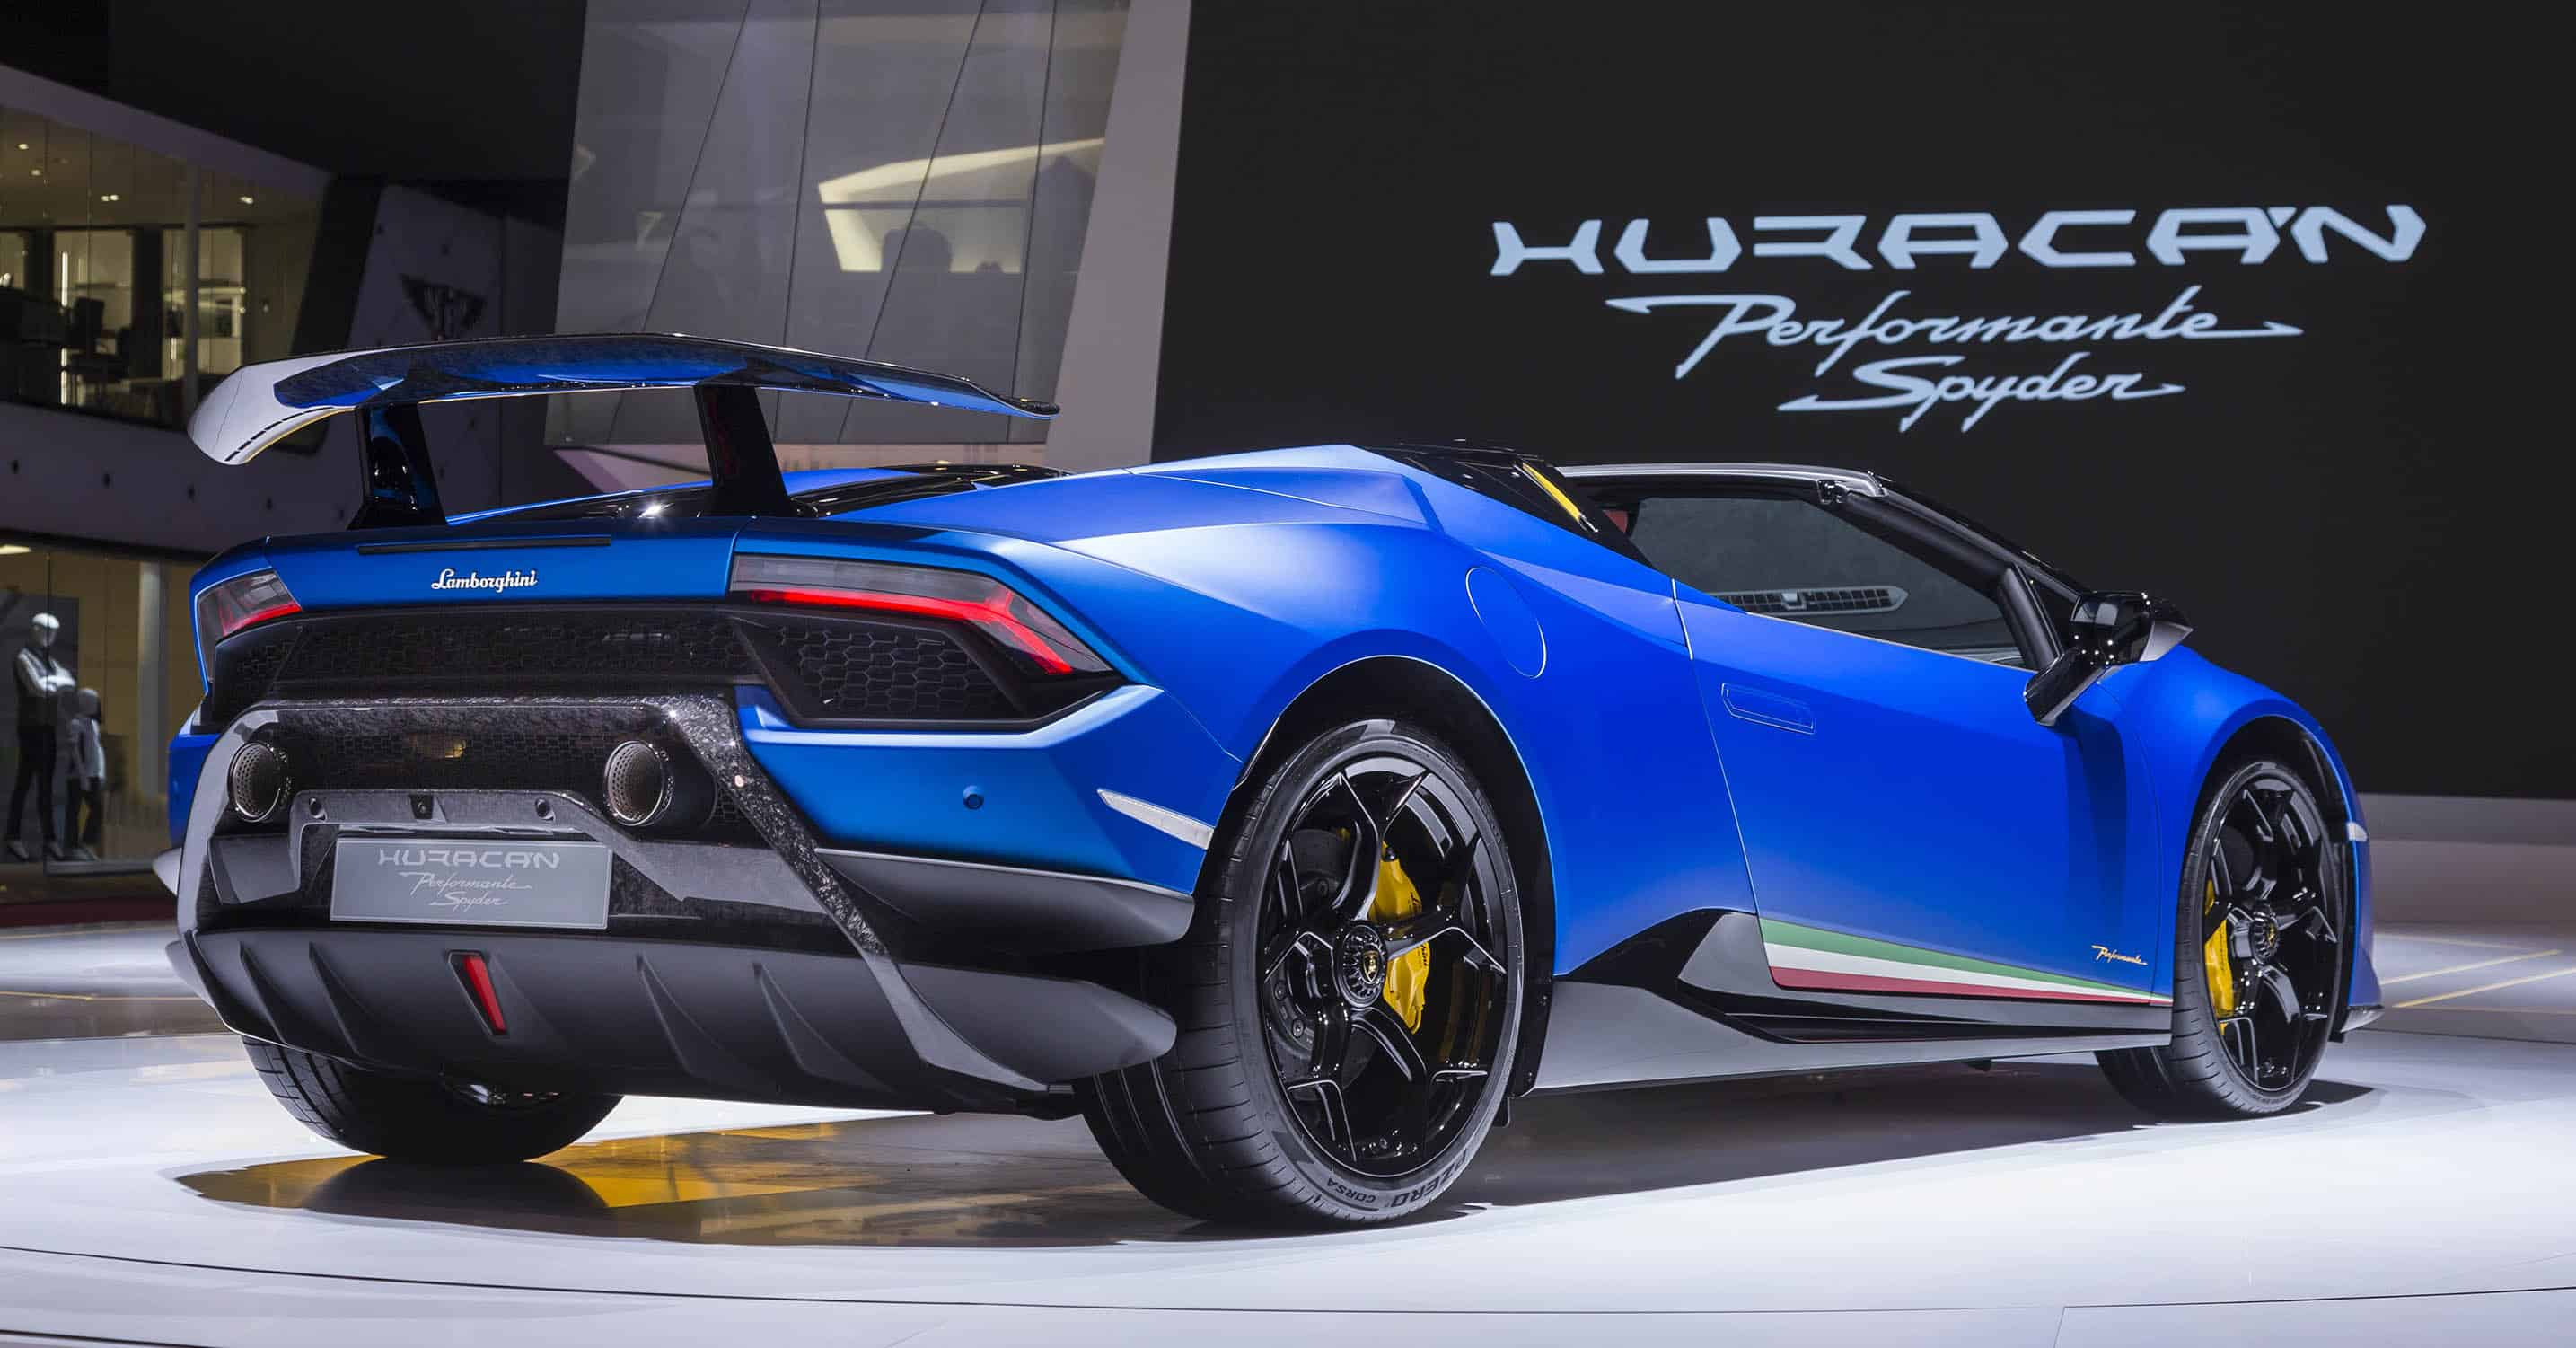 Rent A Lamborghini Huracan Performante Spyder Italy Luxury Car Hire